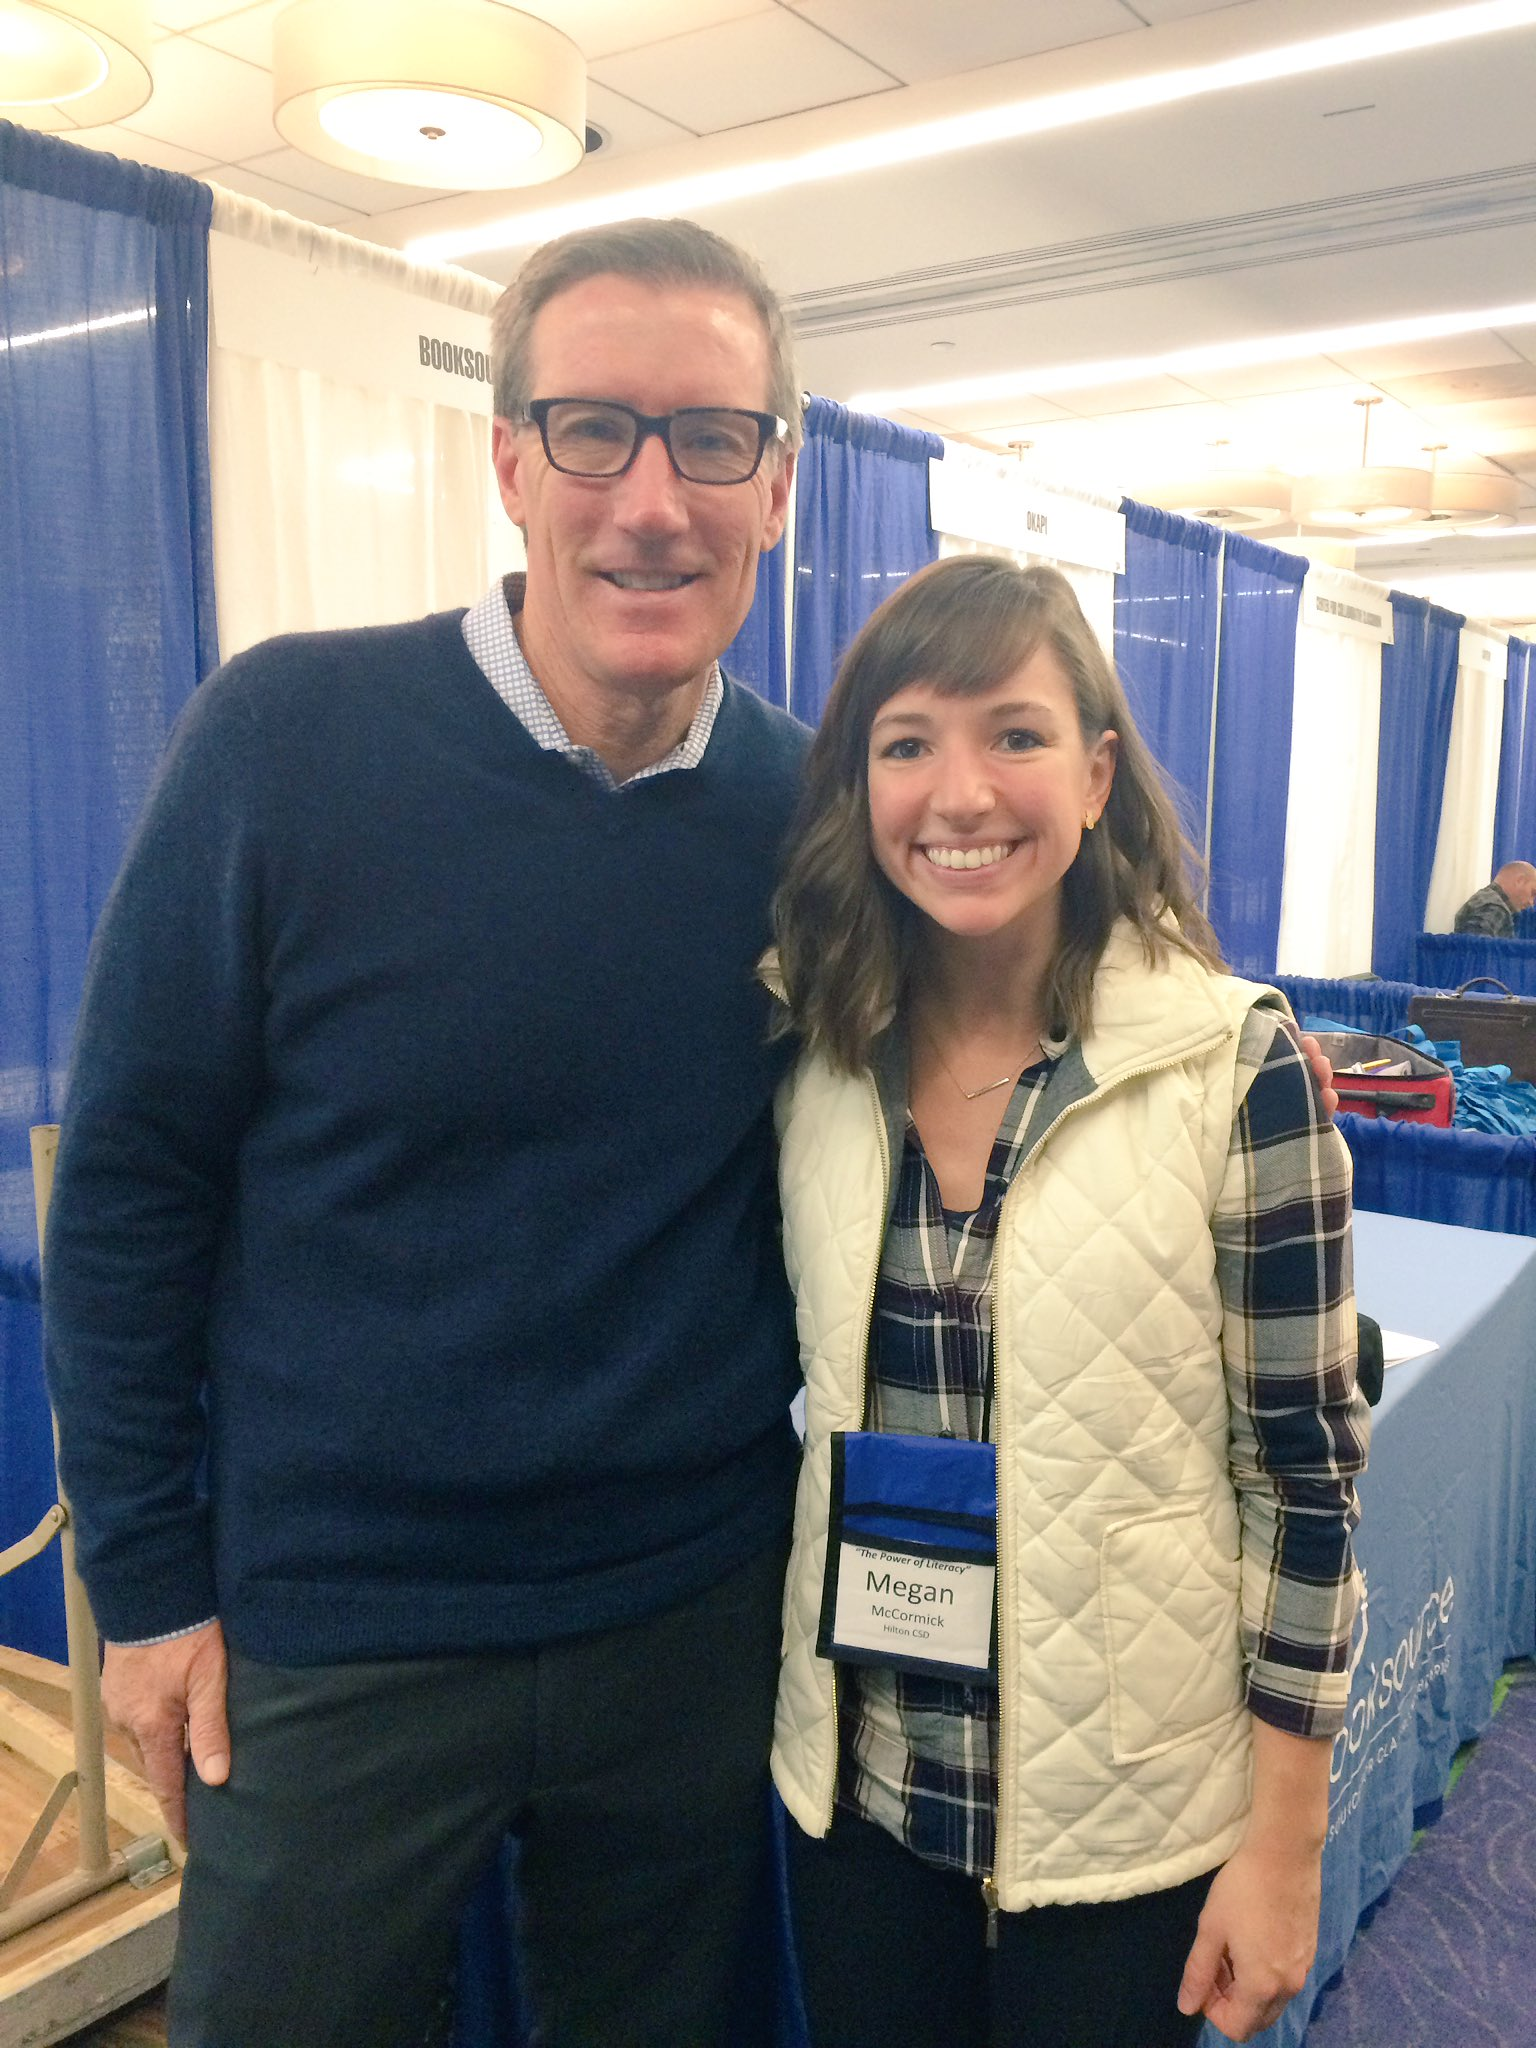 Met another teaching idol today, @KellyGToGo! TY for inspiring me w/ your 4-week argument unit! @nysreading #thepowerofliteracy2016 https://t.co/QWSI7jWv2V